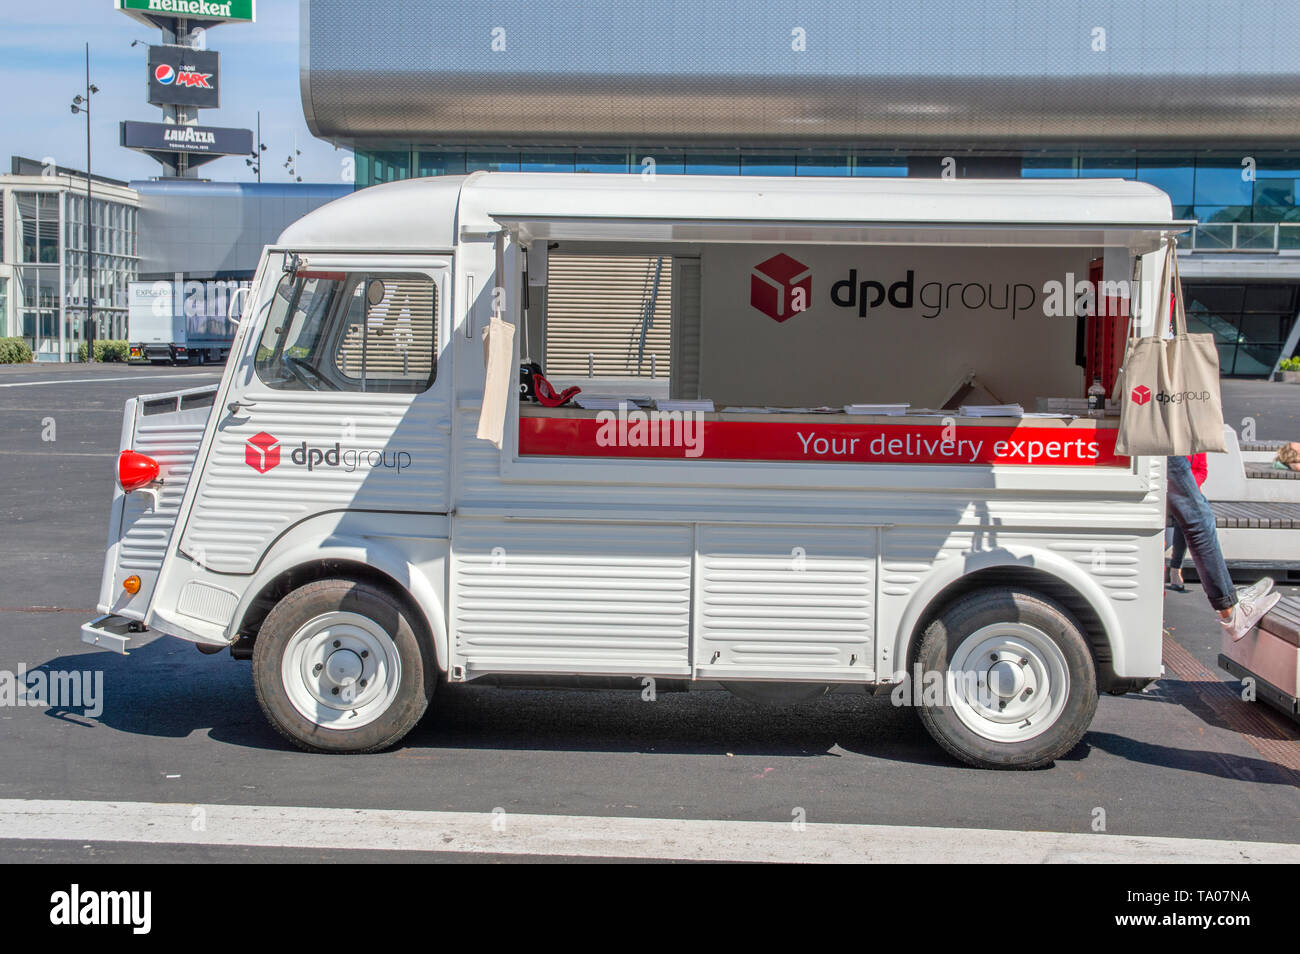 DPD Information Van At At The World Retail Congress At The Rai Complex Amsterdam The Netherlands 2019 - Stock Image